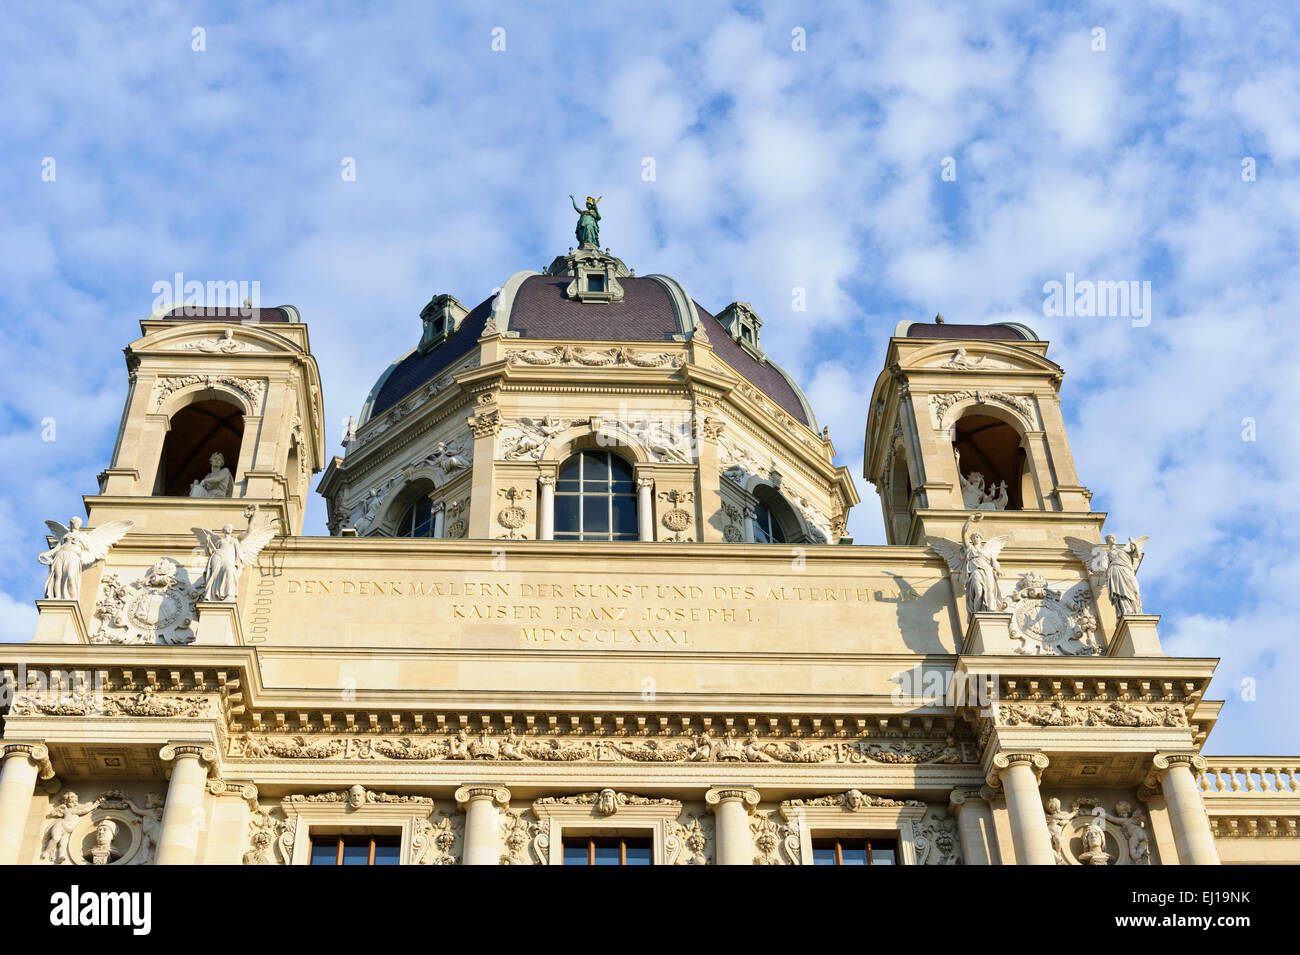 The decorative facade of the Museum of Art History, Vienna, Austria. Stock Photo